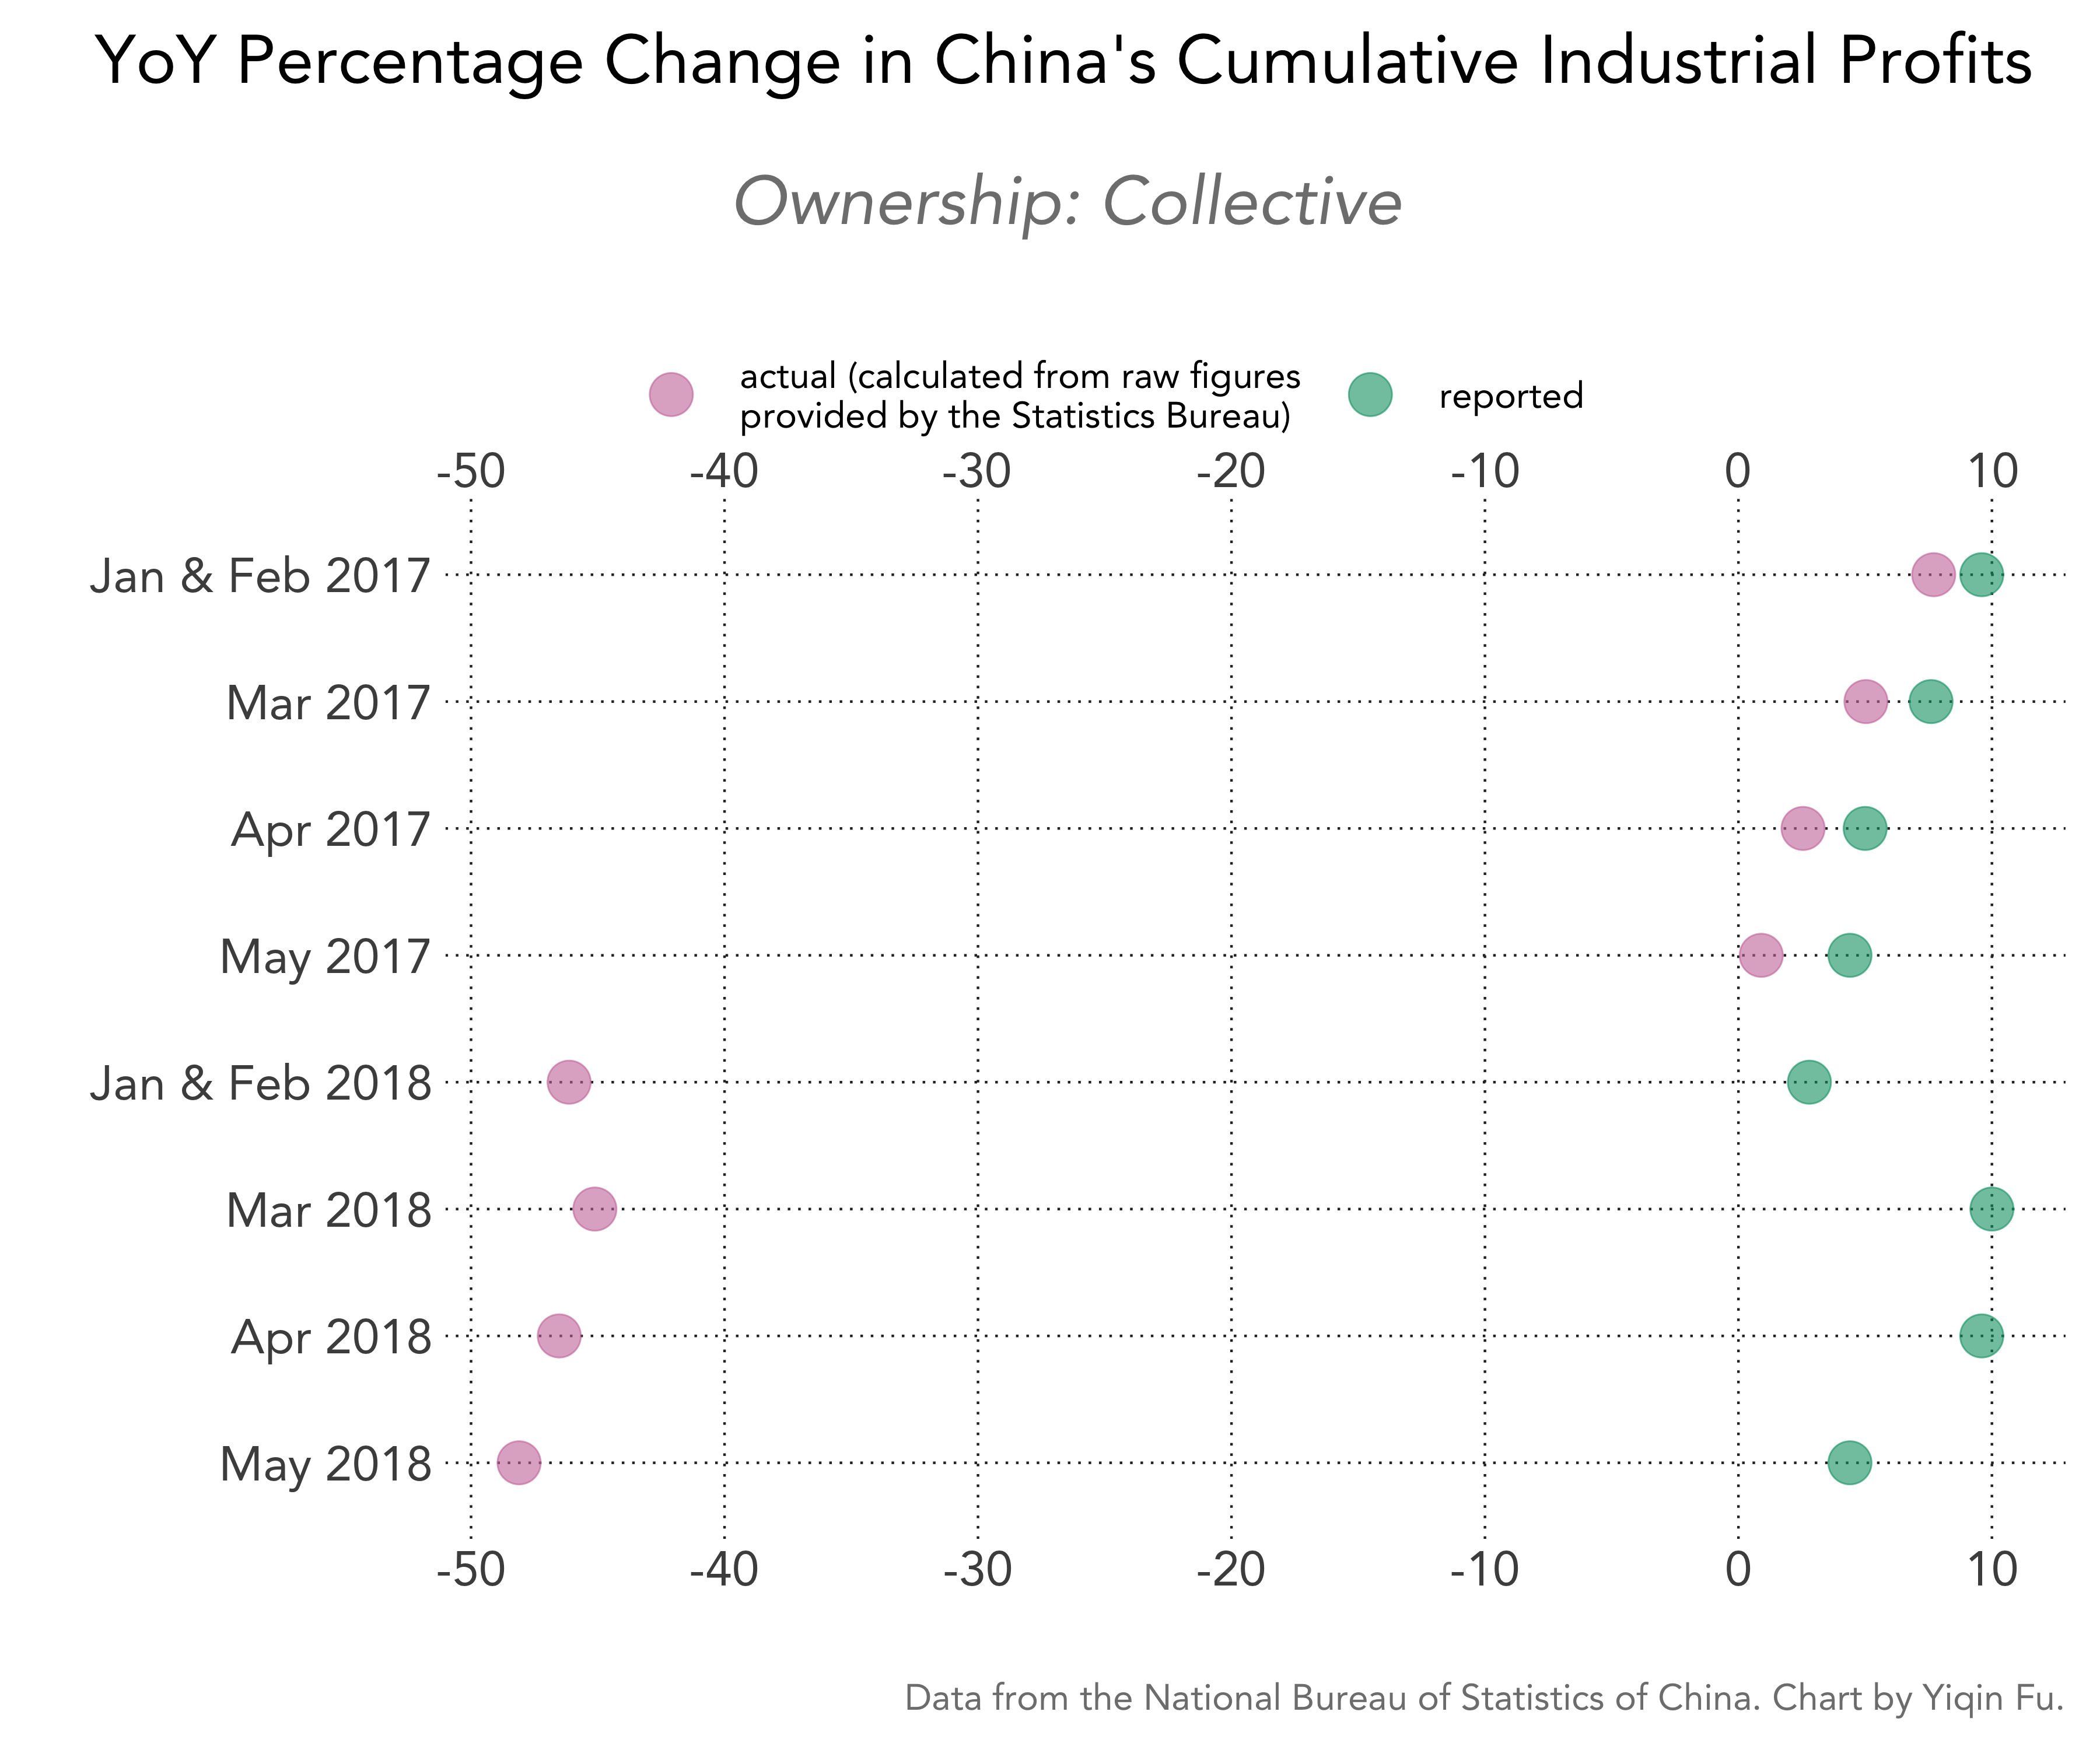 china-cumulative-industrial-profits-pct-change-actual-vs-reported-collective